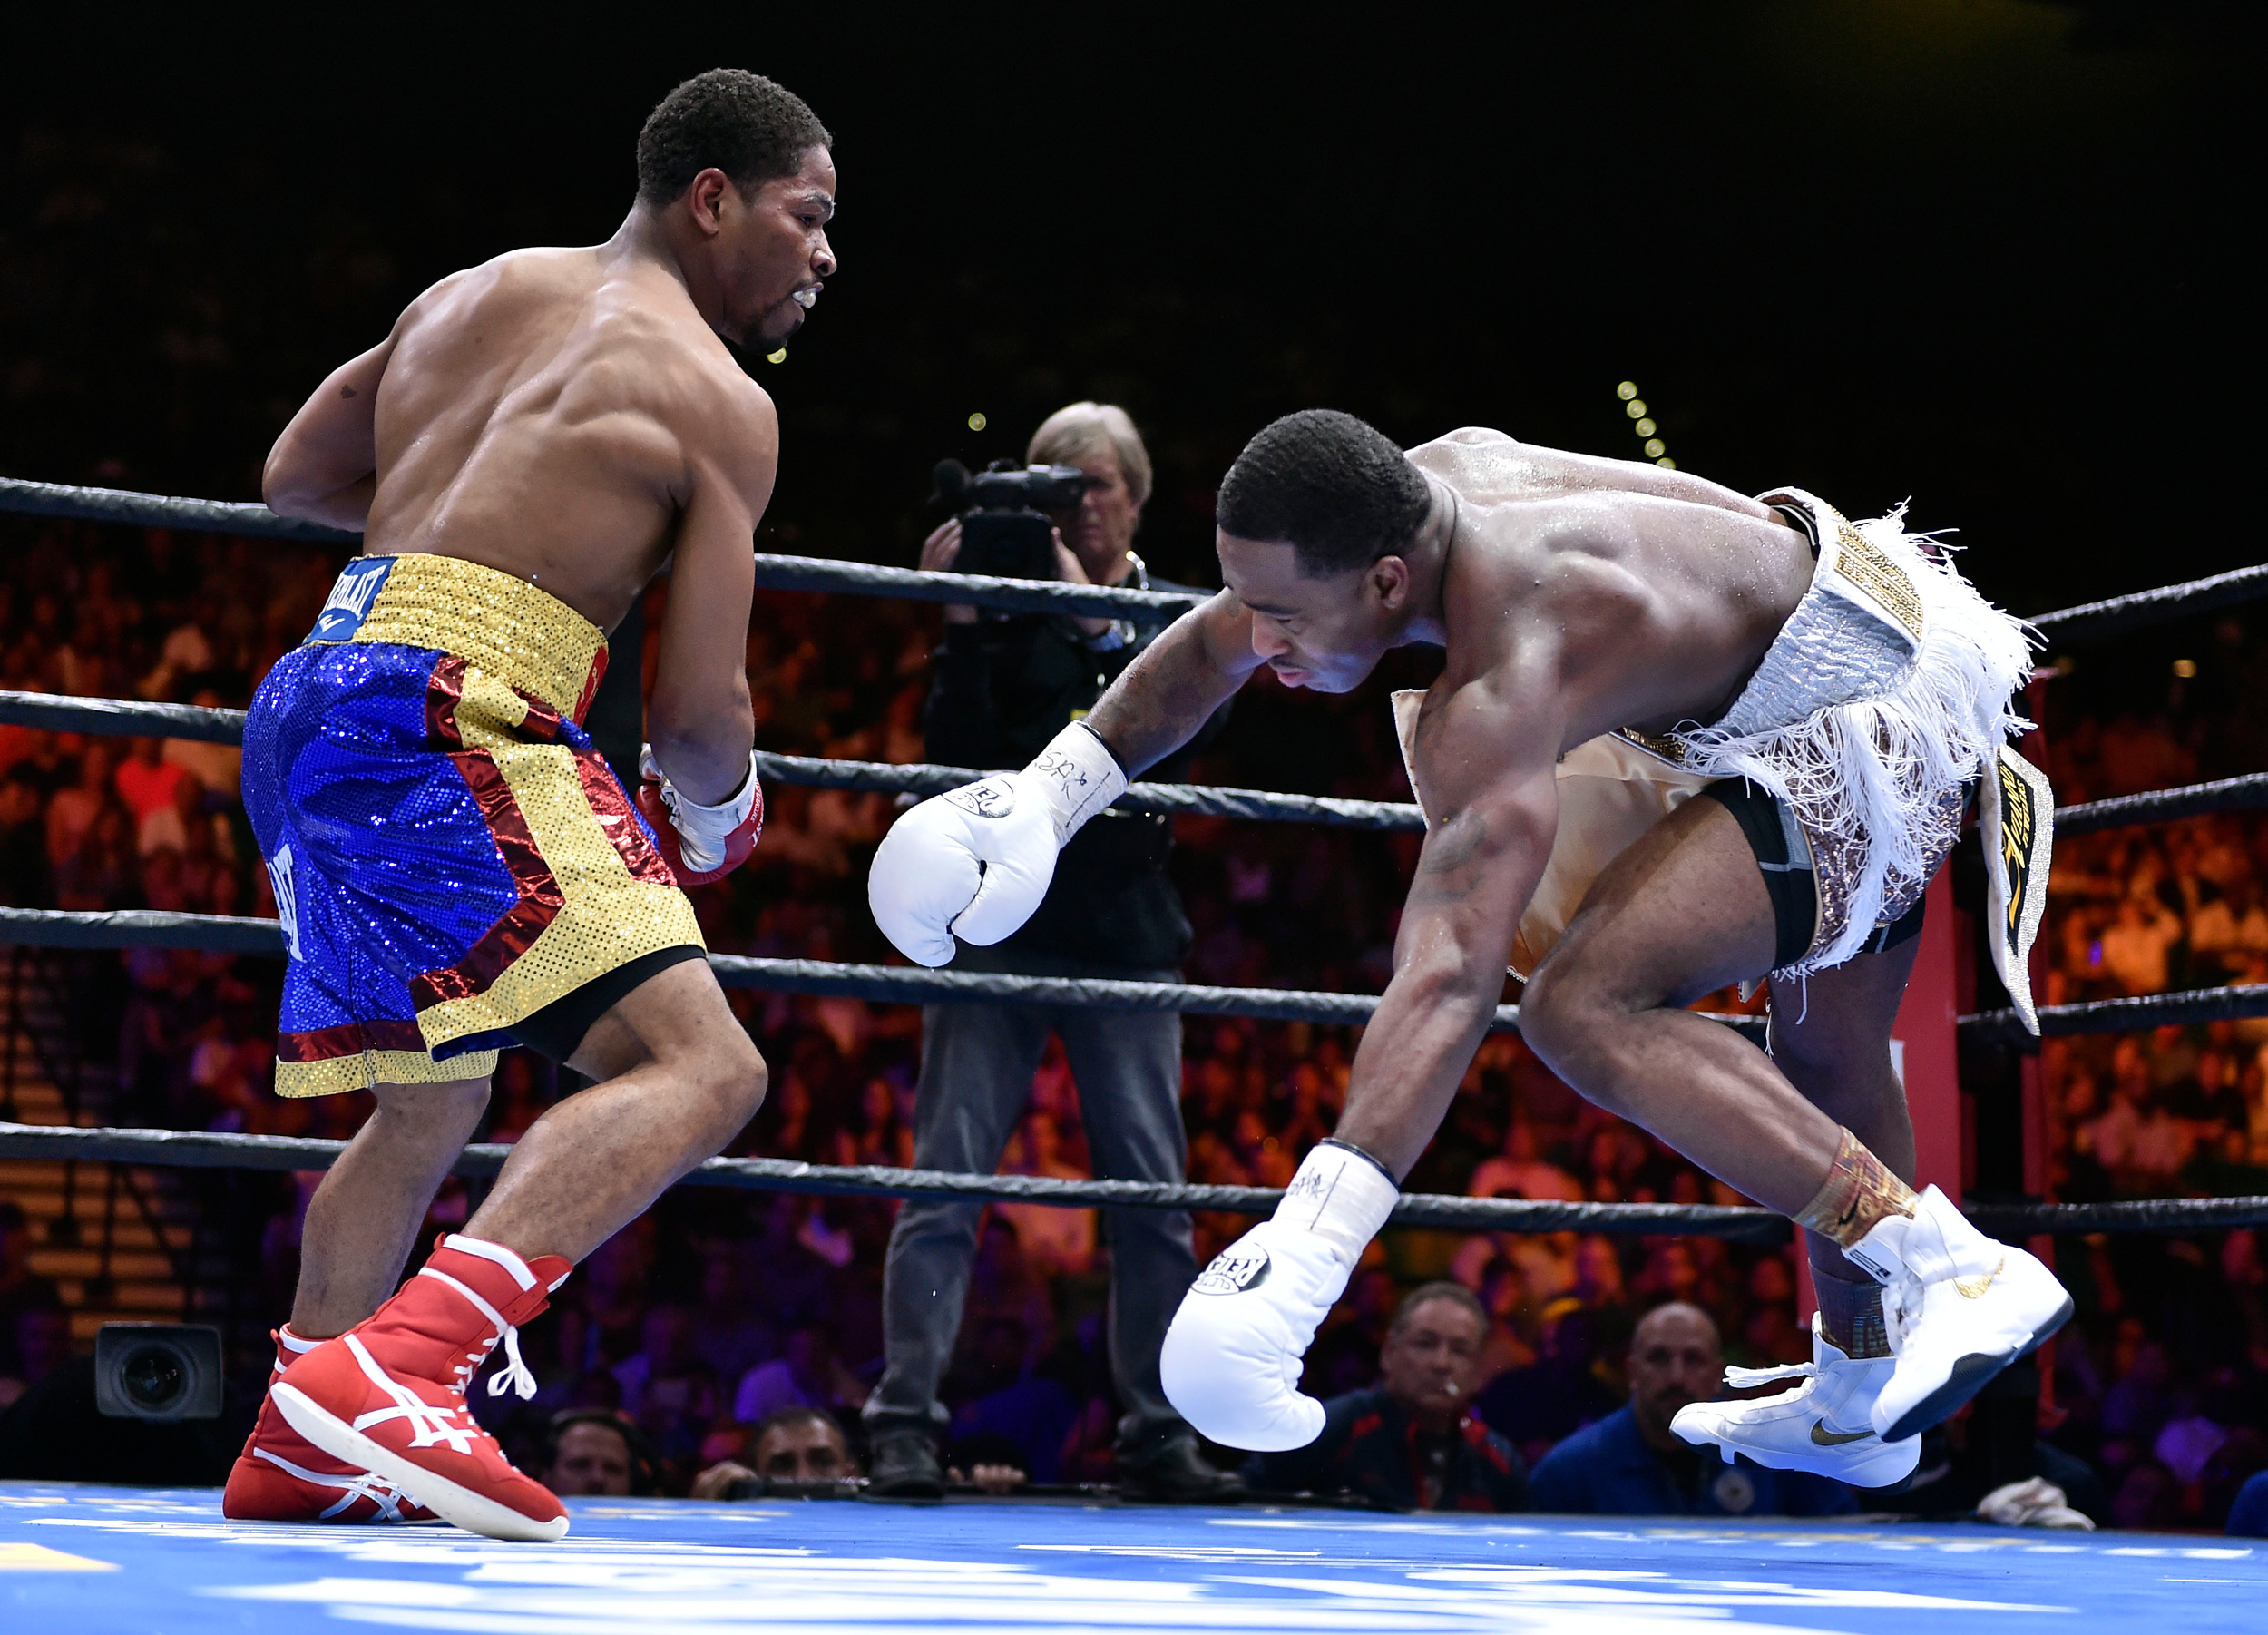 Shawn Porter, left, knocks Adrien Broner off-balance during a welterweight fight on Saturday, June 20, 2015, in Las Vegas. Porter won by unanimous decision after a 12-round bout.